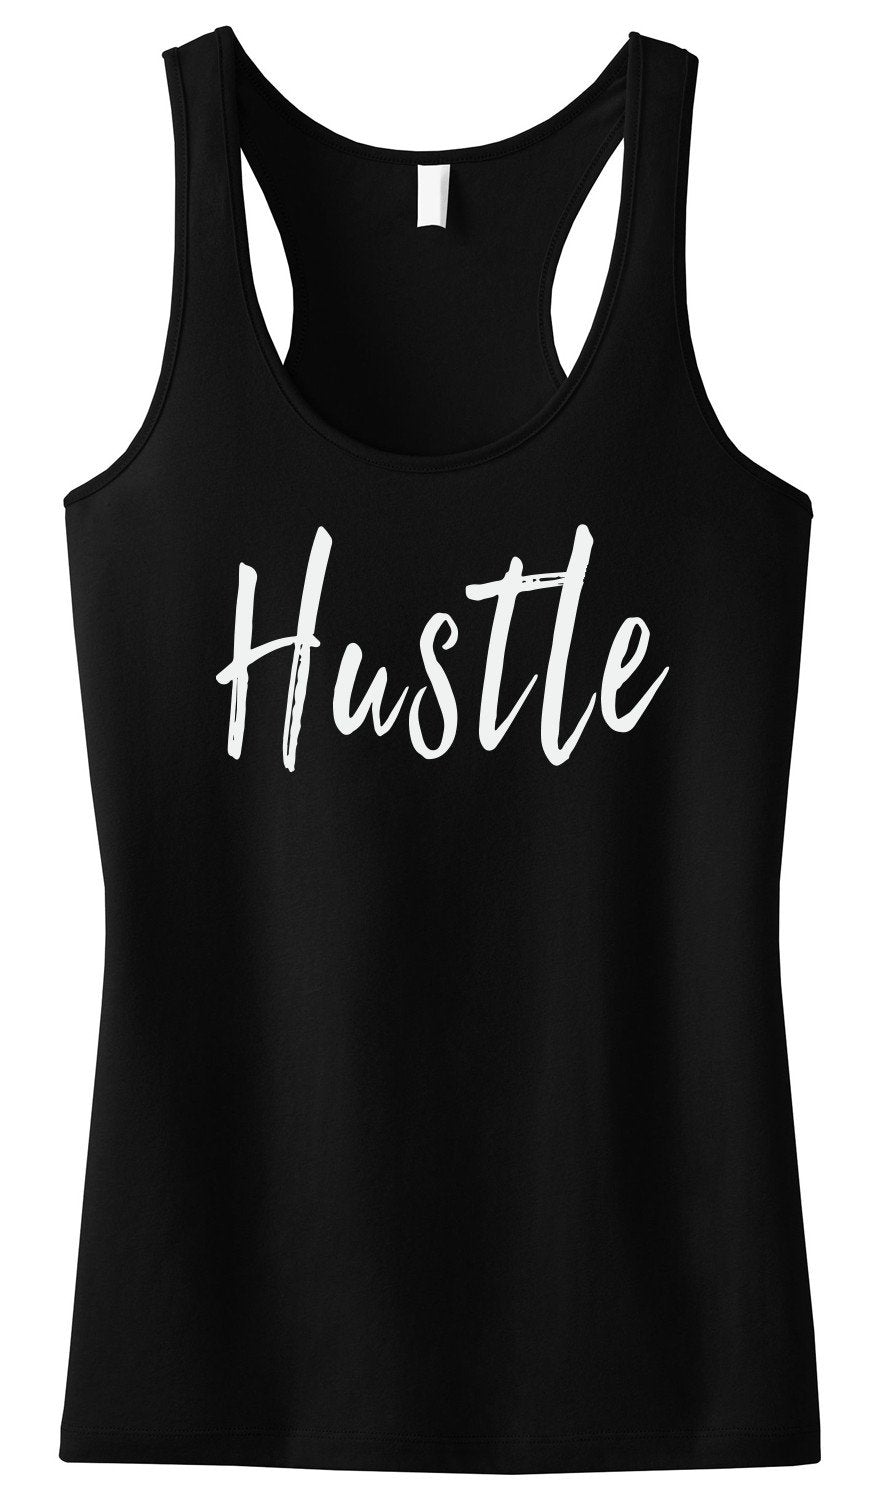 HUSTLE Tank Top Black-AcDrift